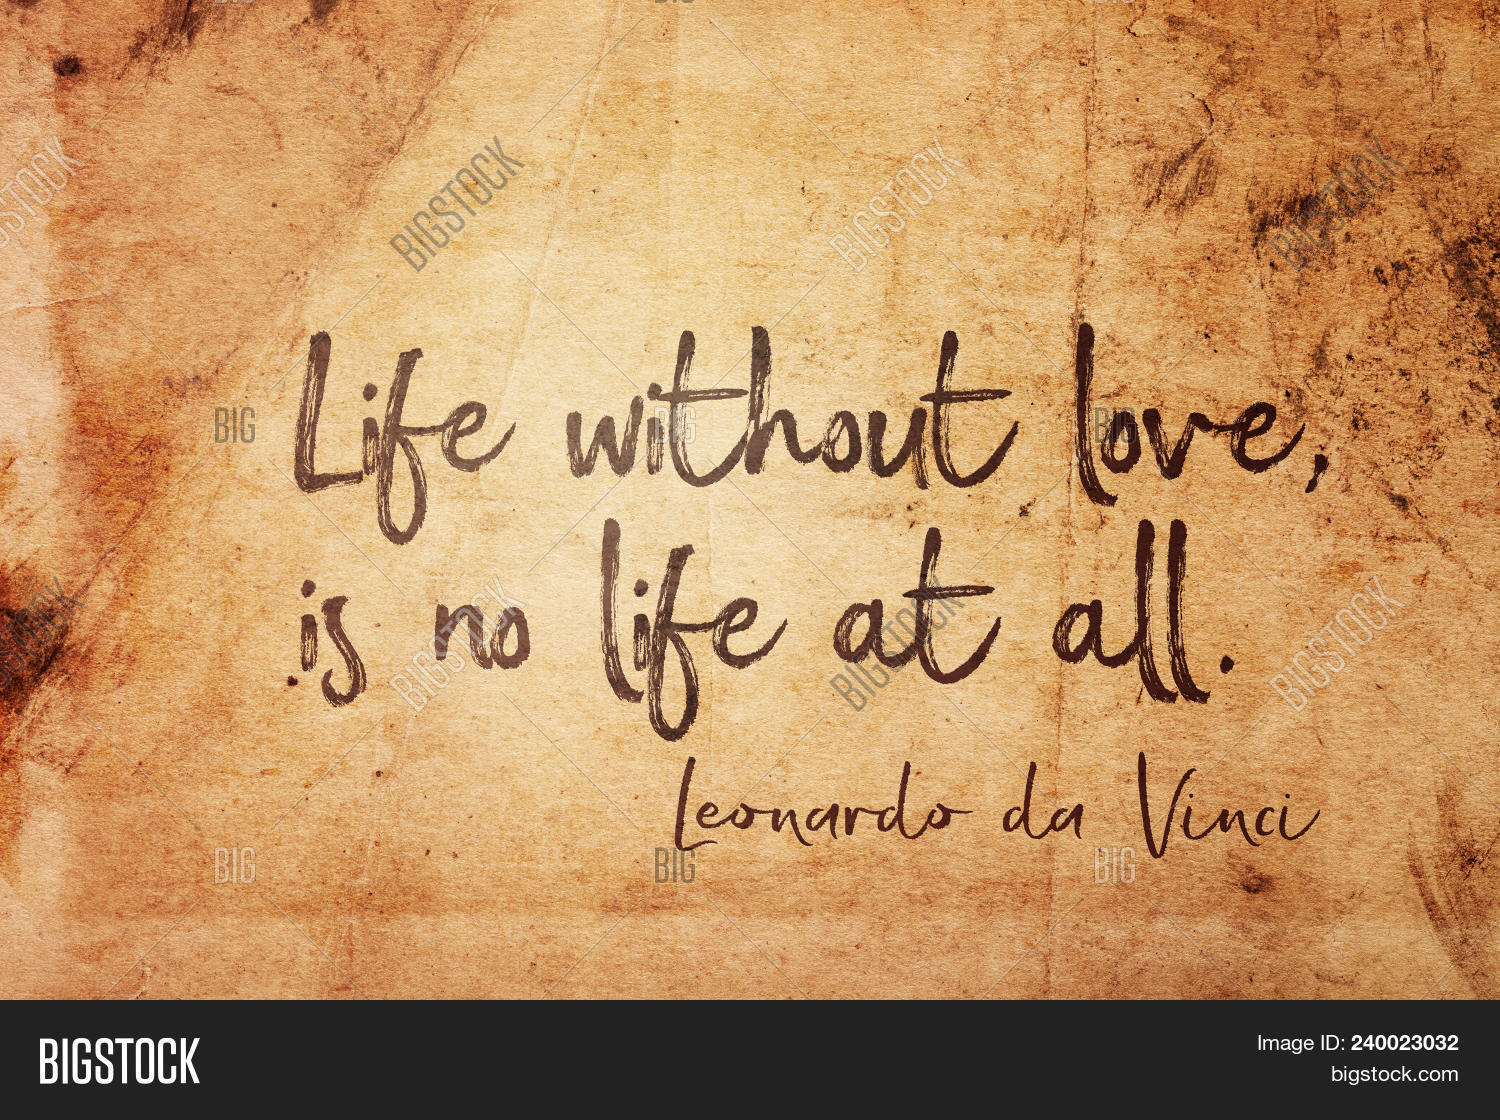 life without love is